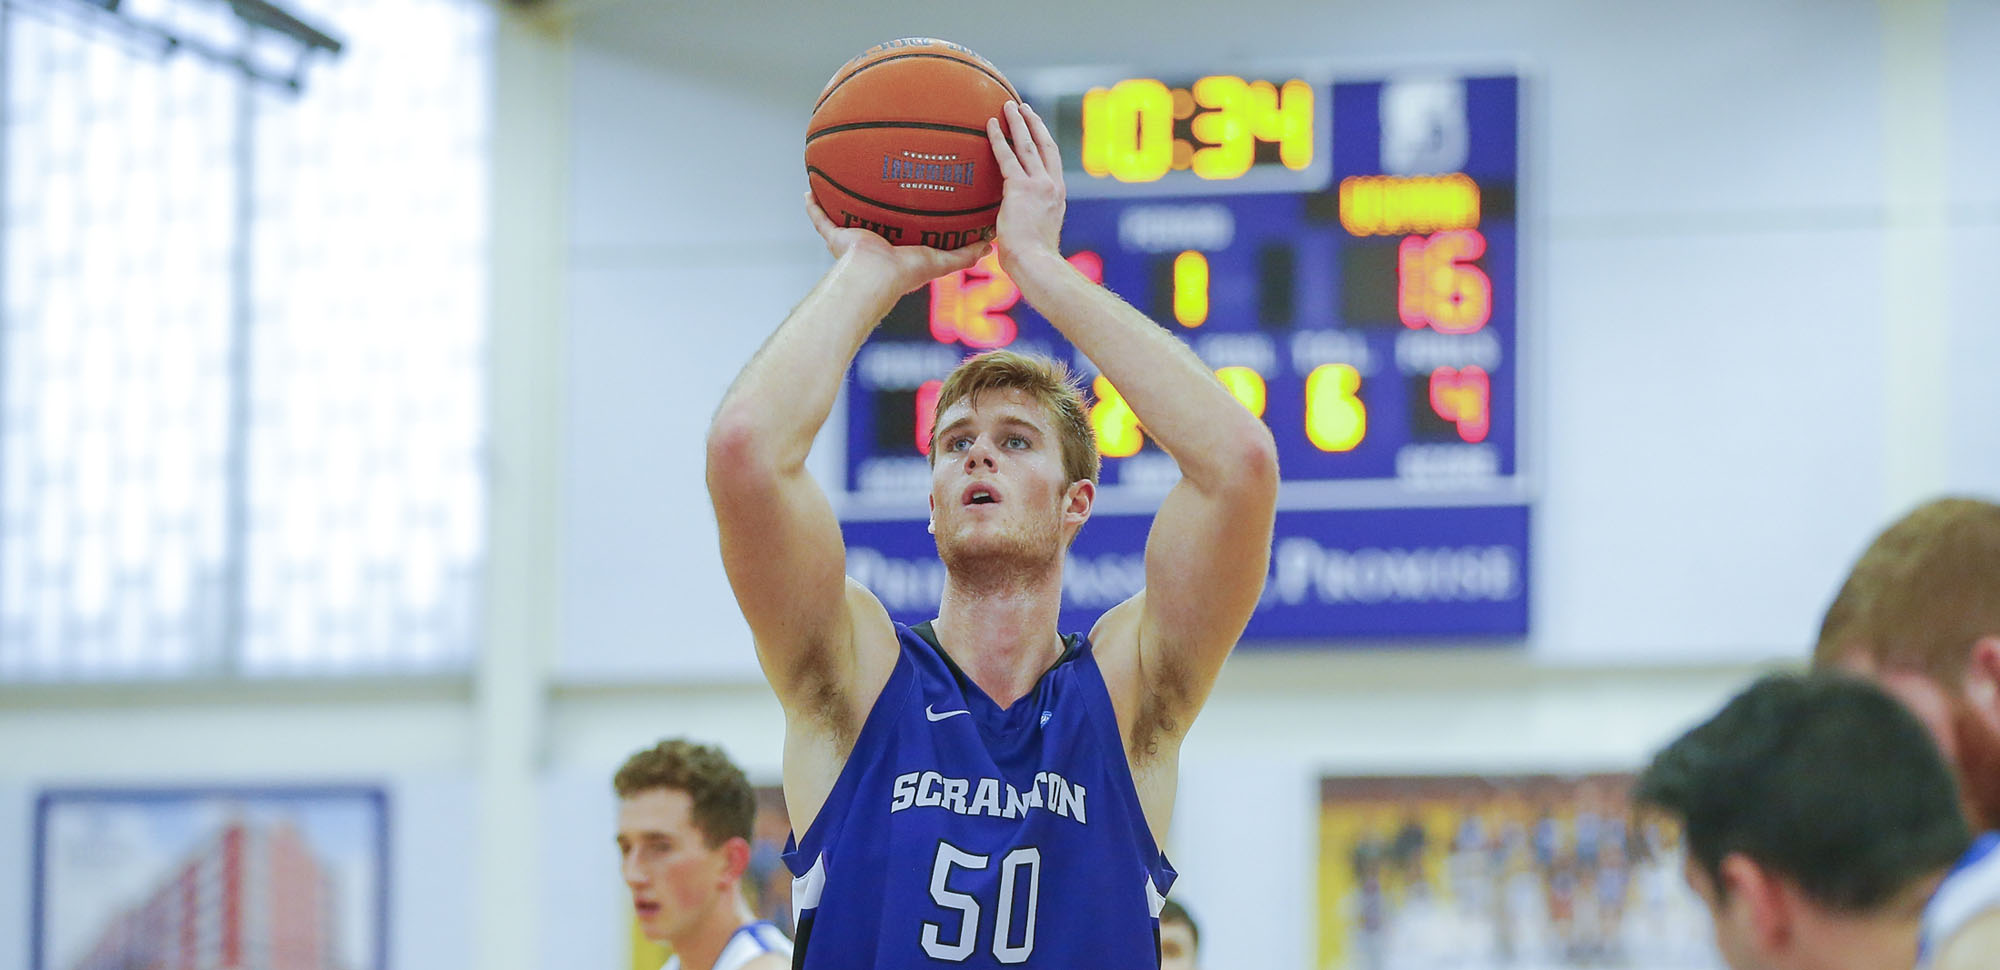 Senior center John Vitkus had 23 points and eight rebounds as the Royals picked up their fourth straight win on Wednesday night.